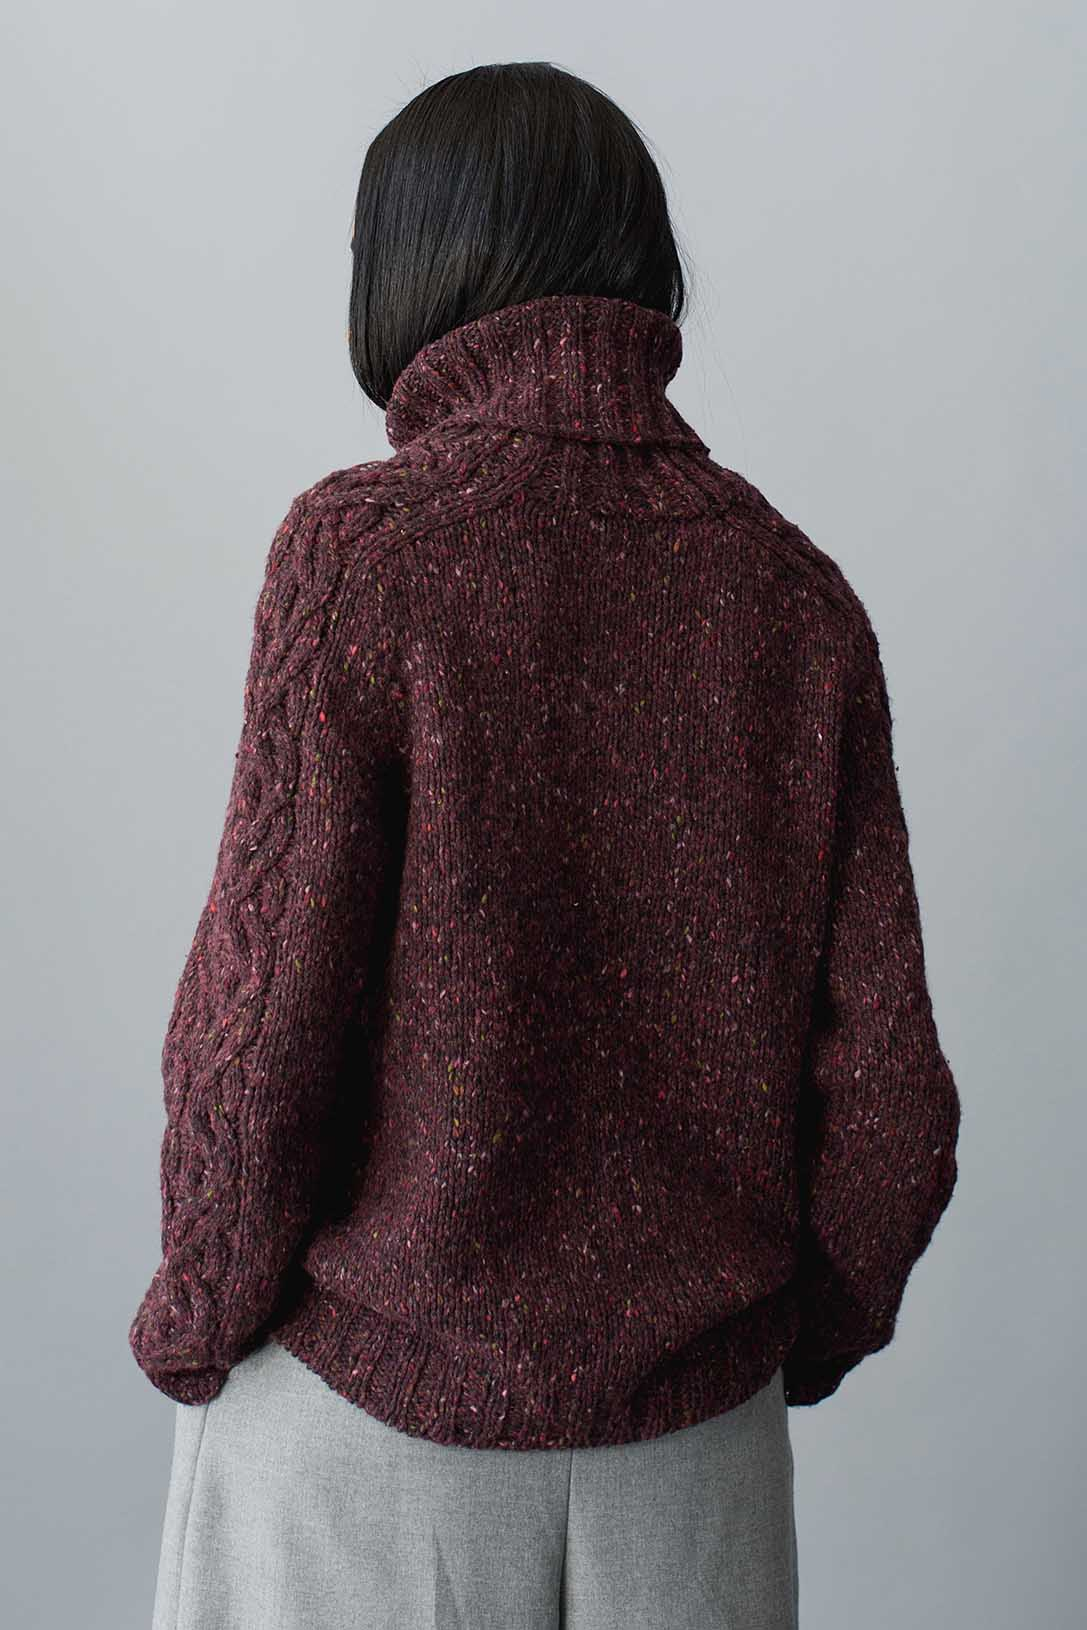 Charles Pullover by Michelle Wang